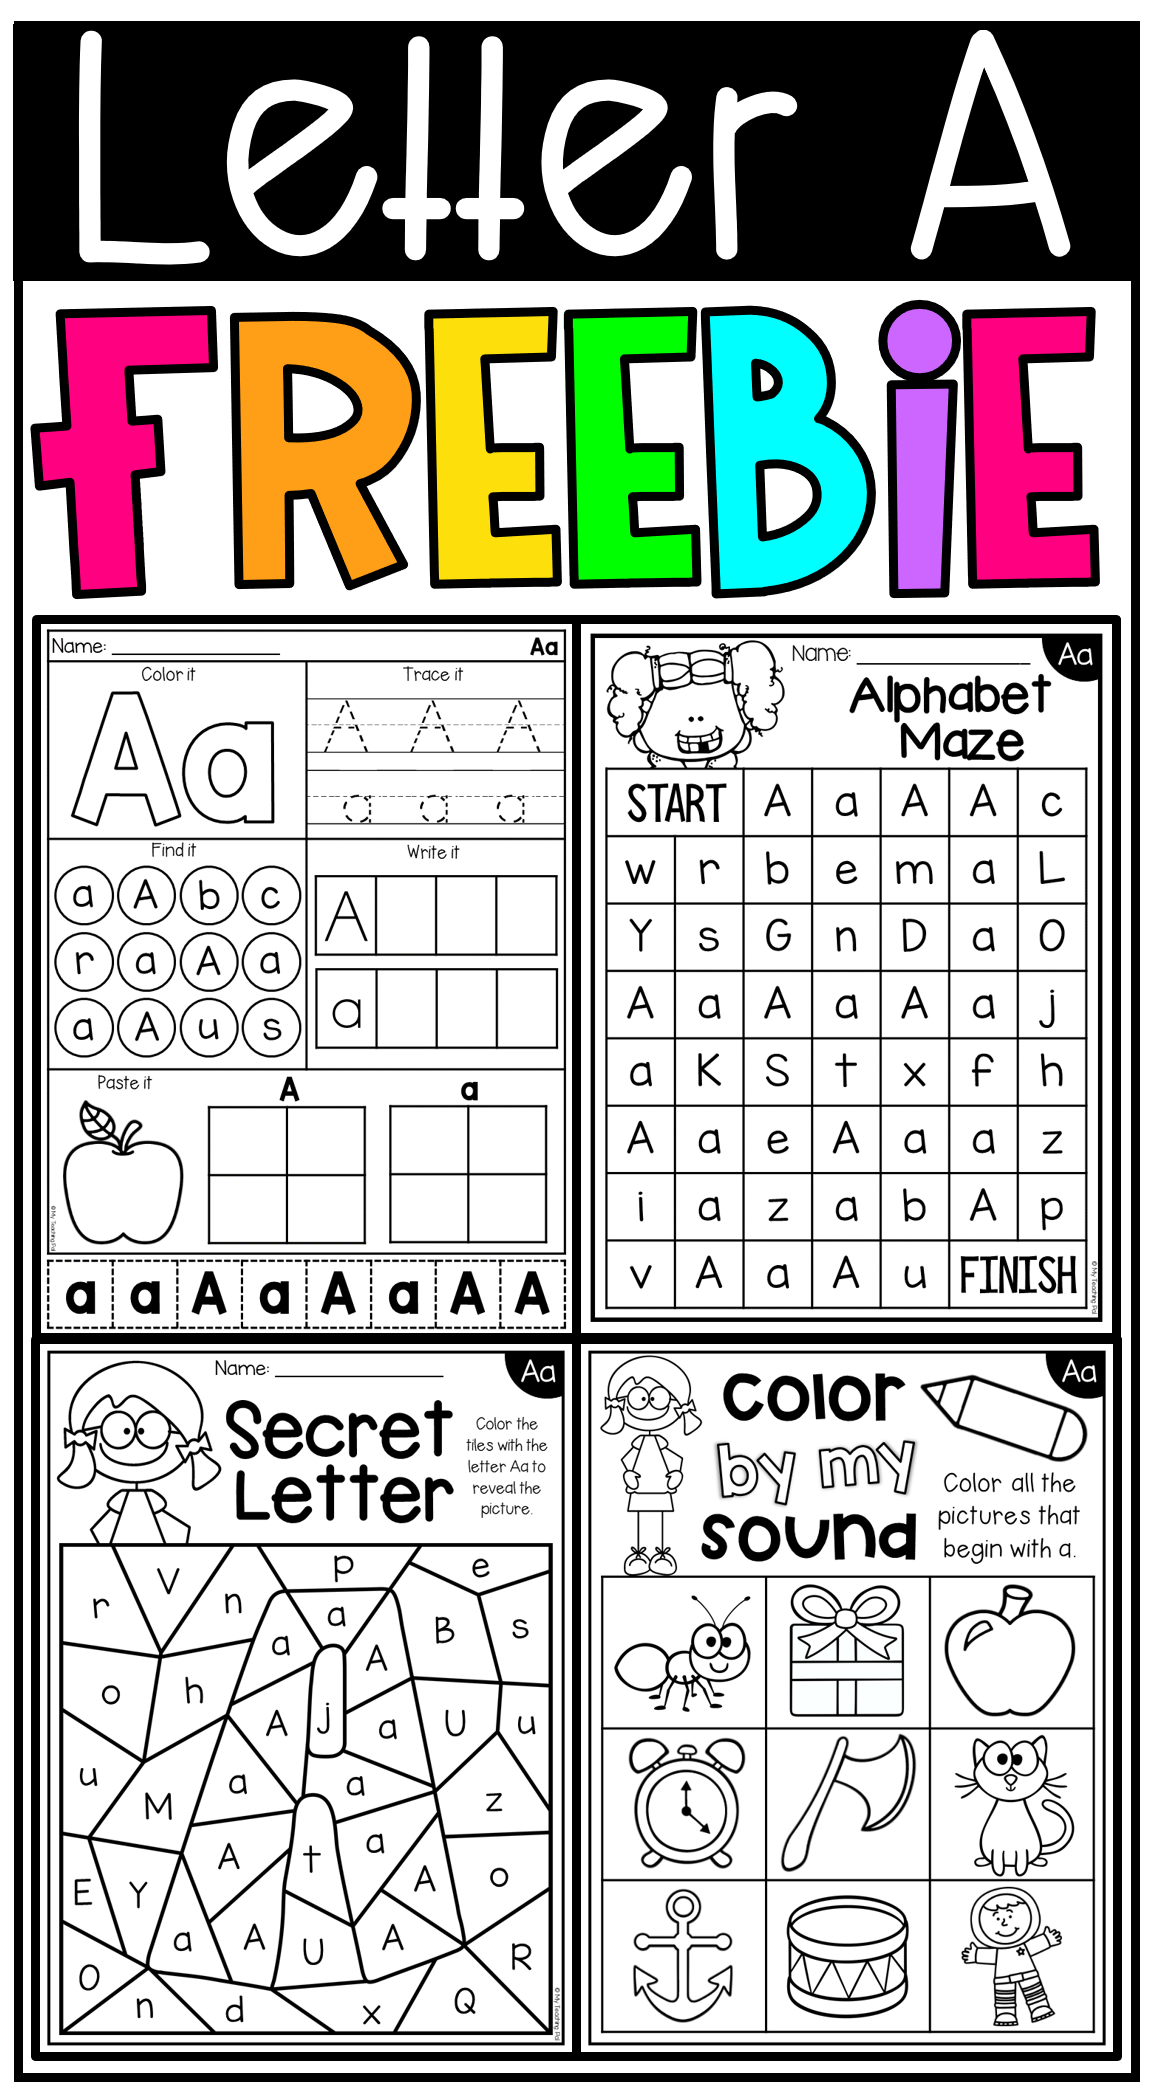 Free Letter A Alphabet Worksheets